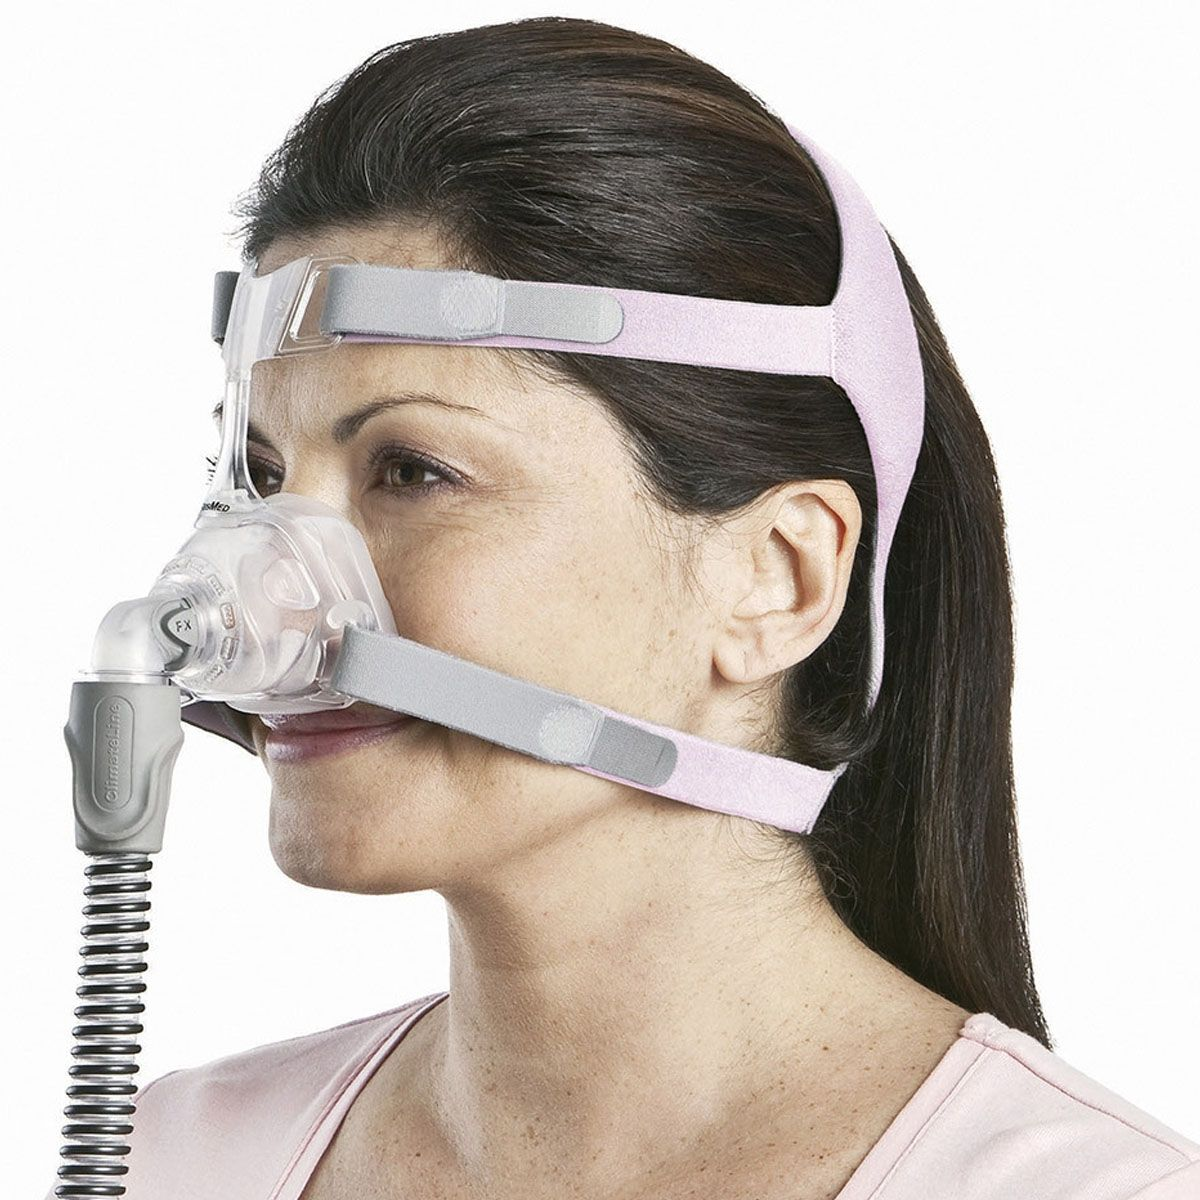 Mirage FX For Her Resmed (Máscara Nasal)